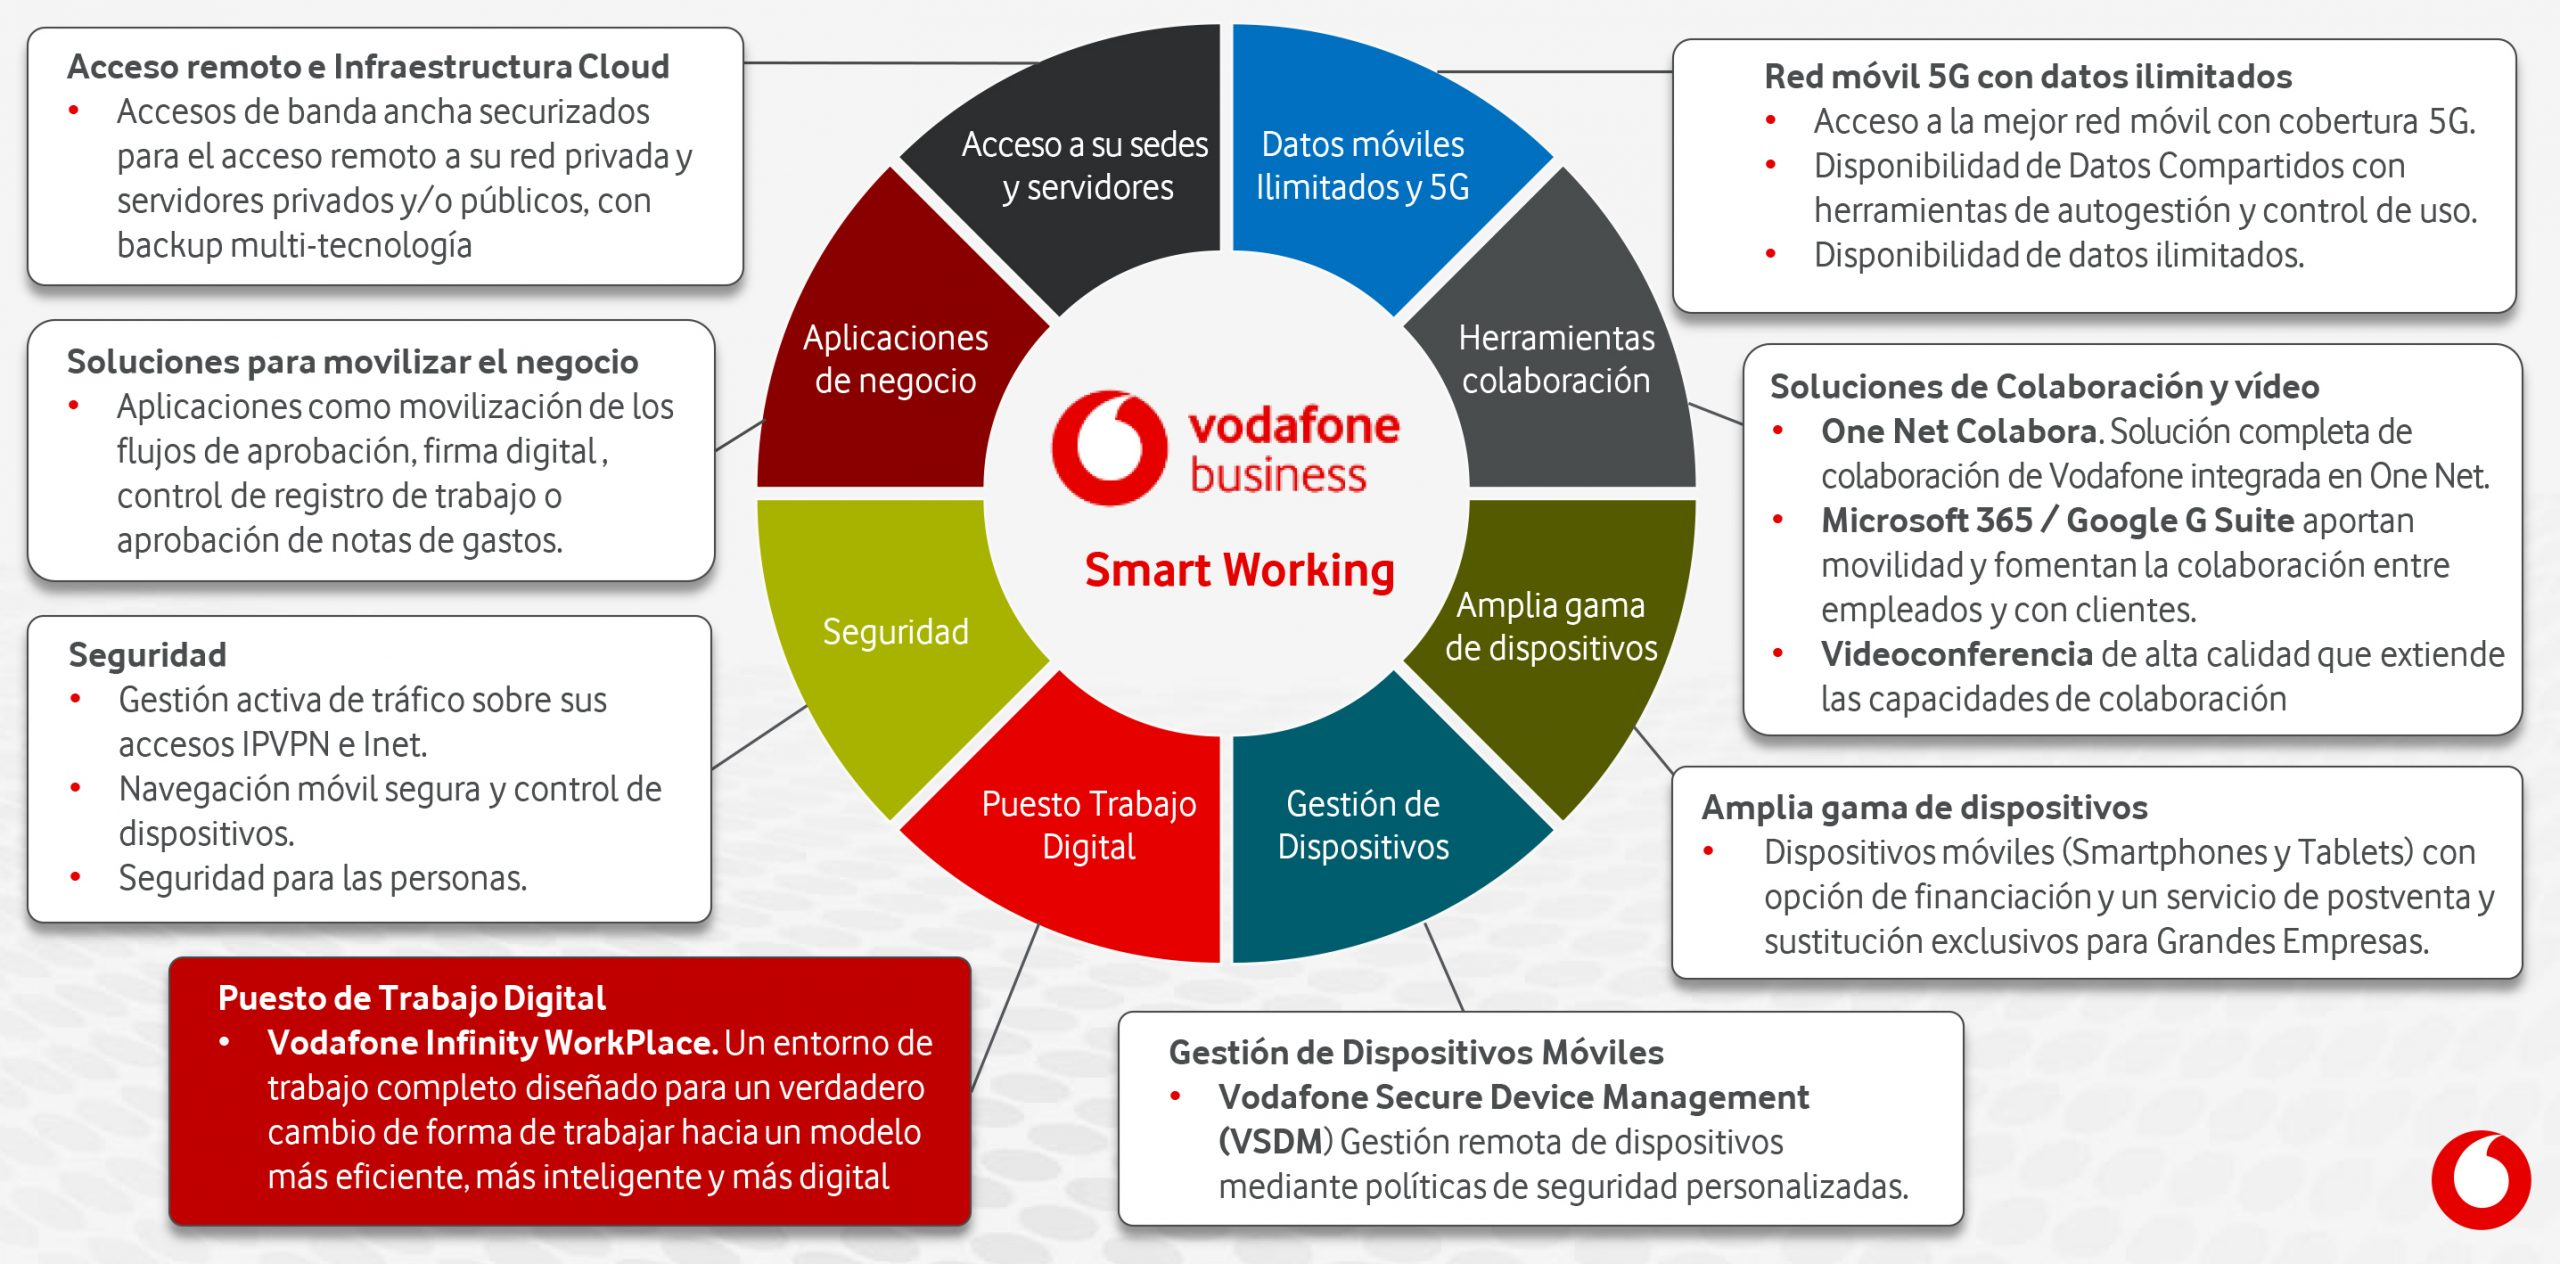 Vodafone Infinity Workplace